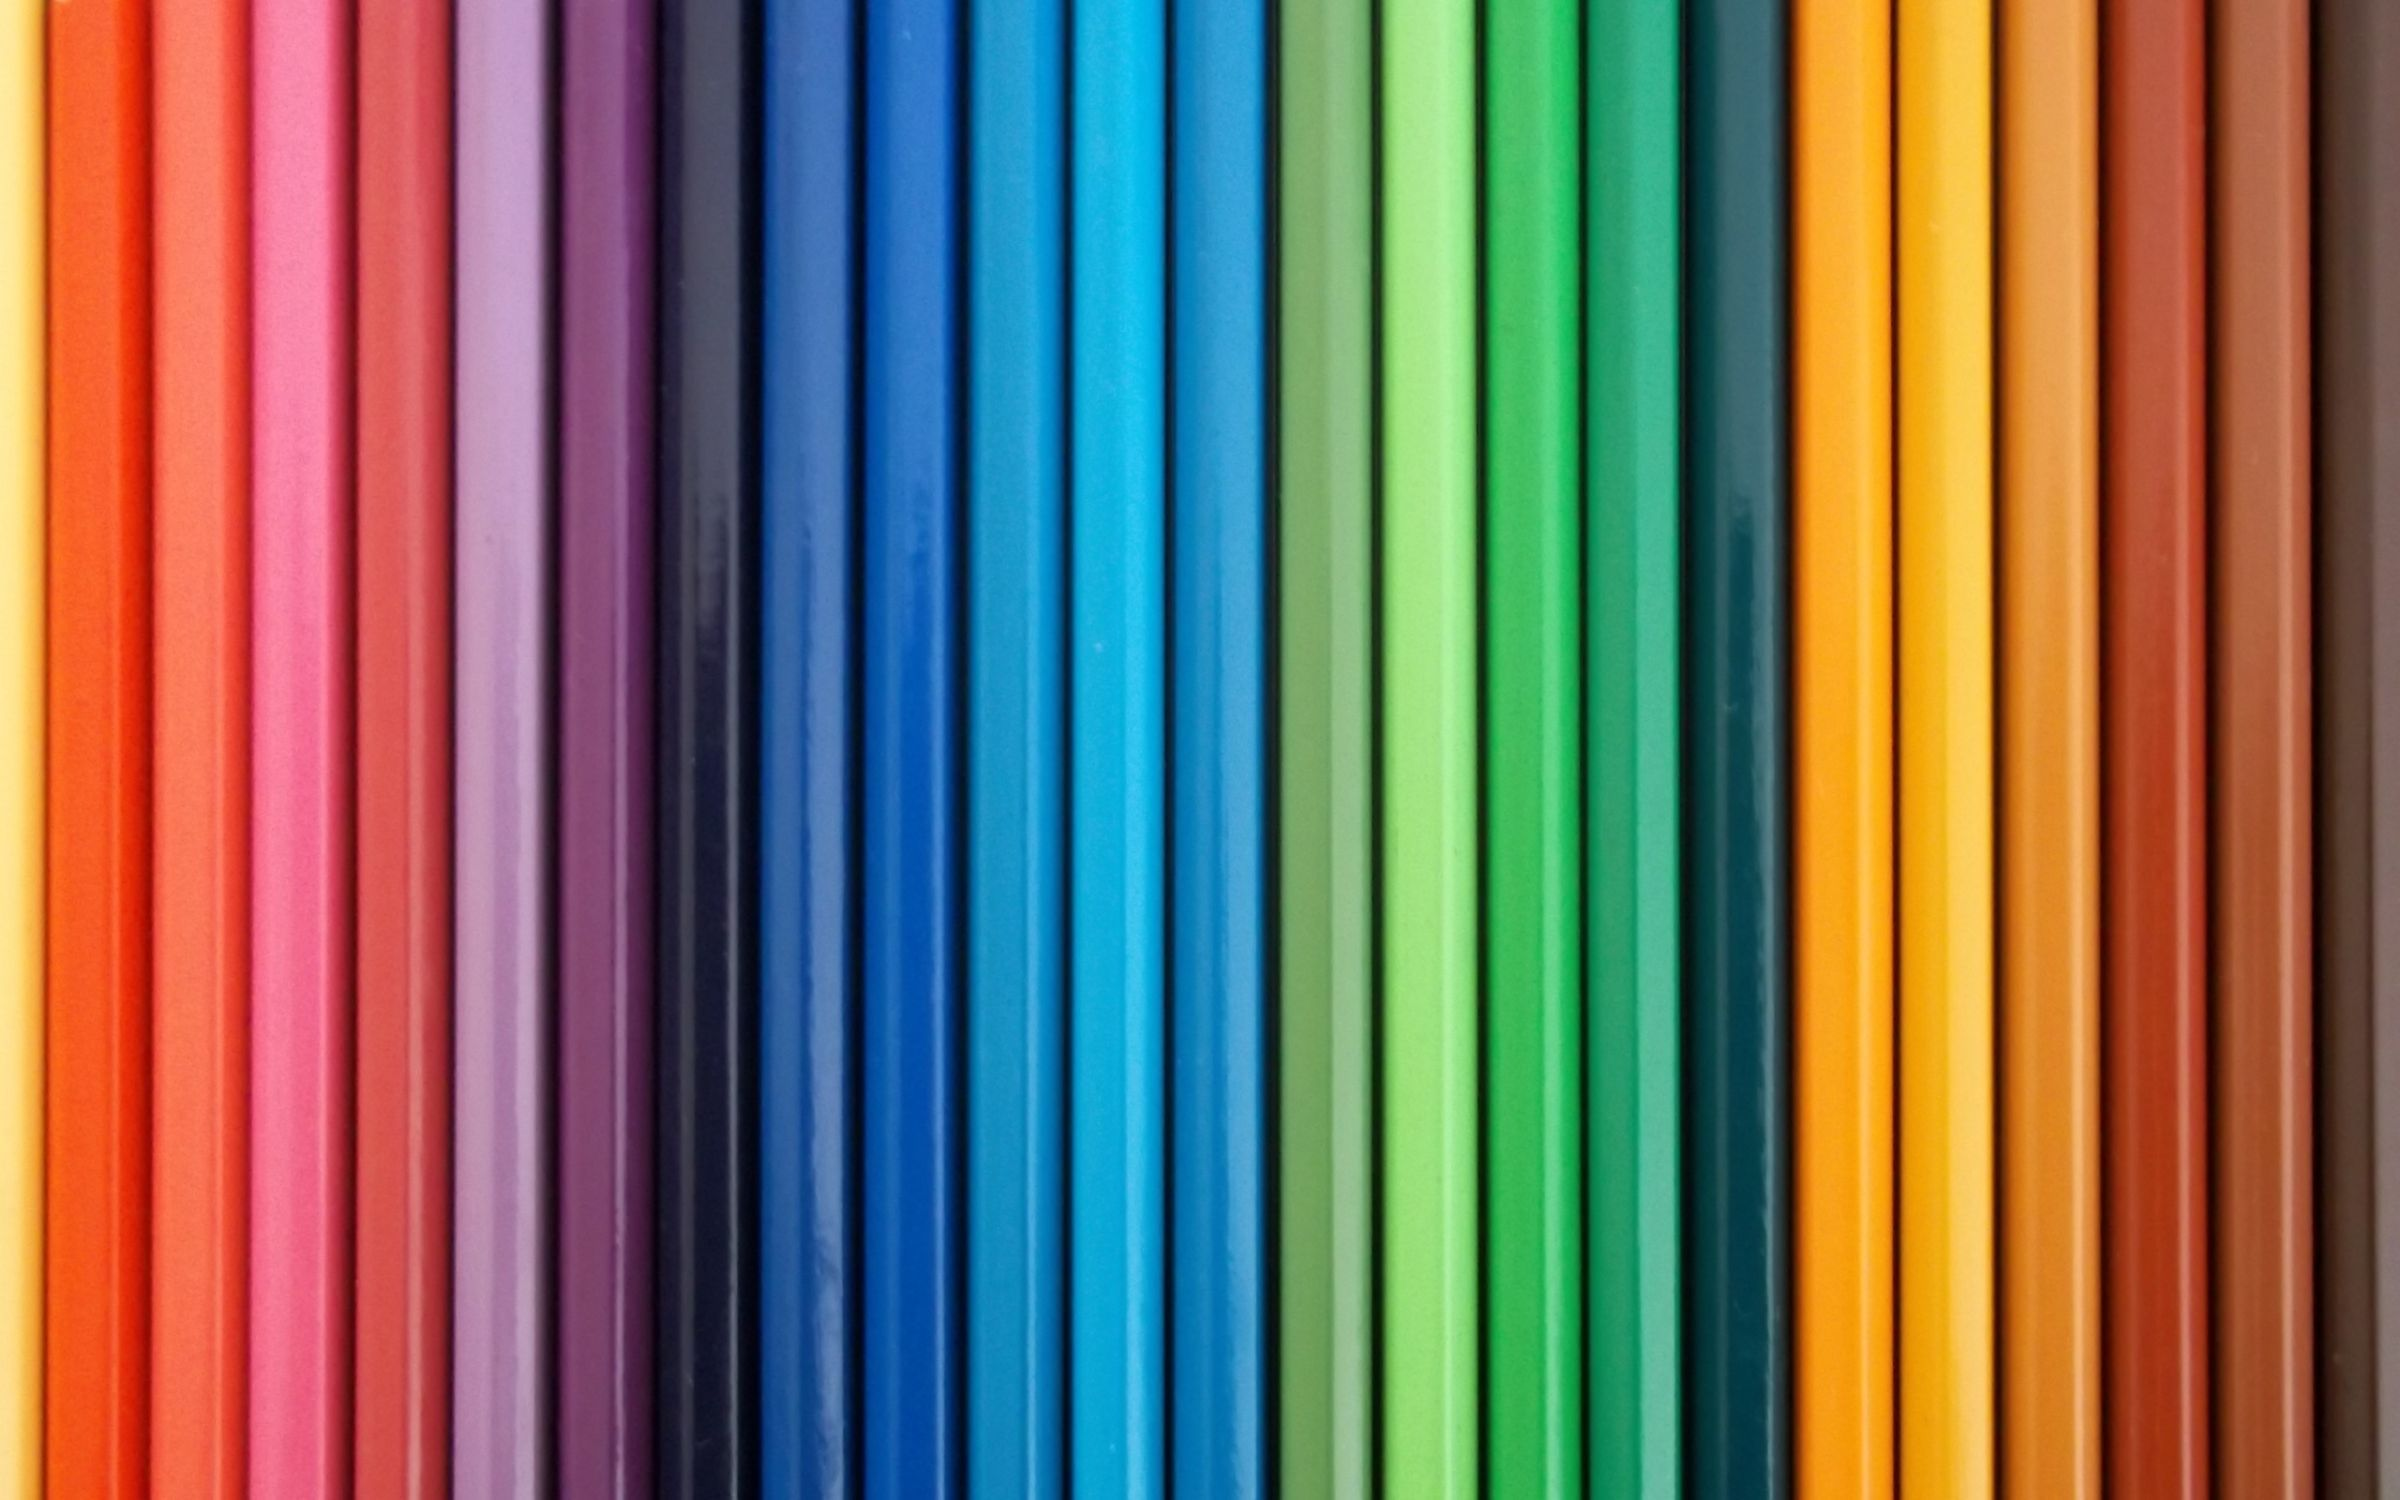 Find And Compare Colors By Shade Pantone Sherwin Williams Paint Match Hex Triplet Html Css Codes Rgb Cmyk Hsb Valueore